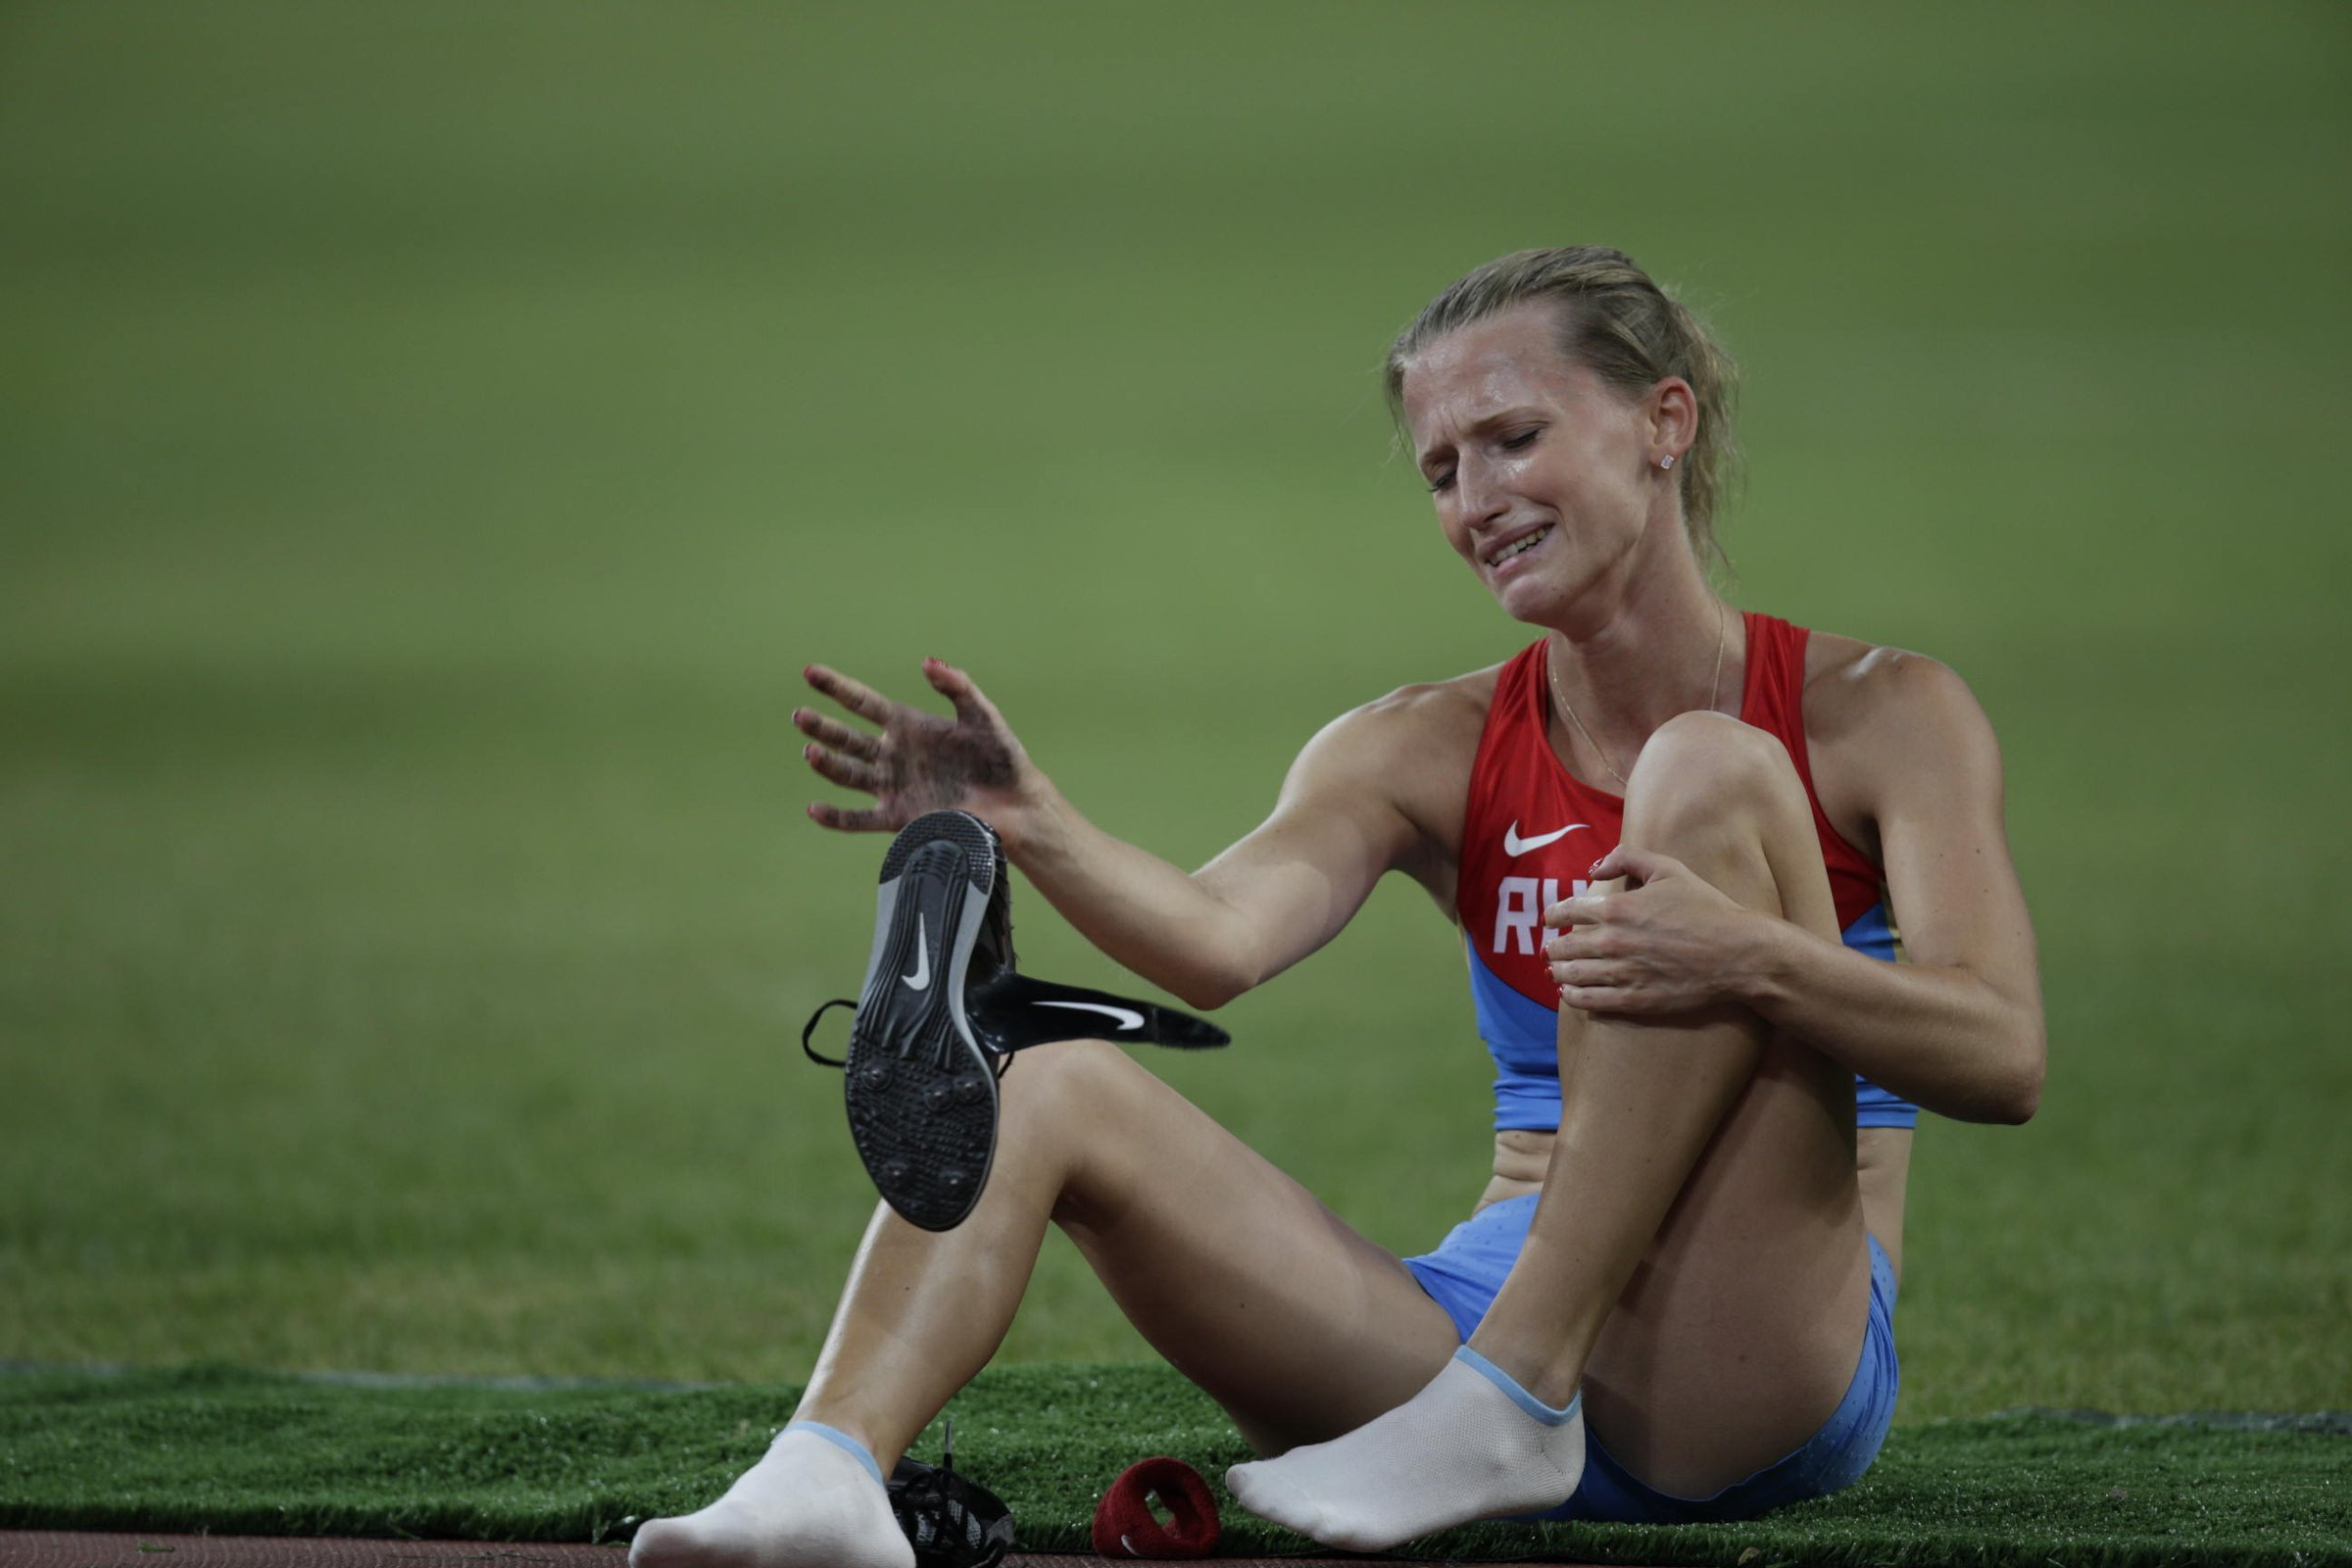 Anzhelika Sidorova (RUS) sits in disappointment after missing three attempts at the 4.50-meter height.